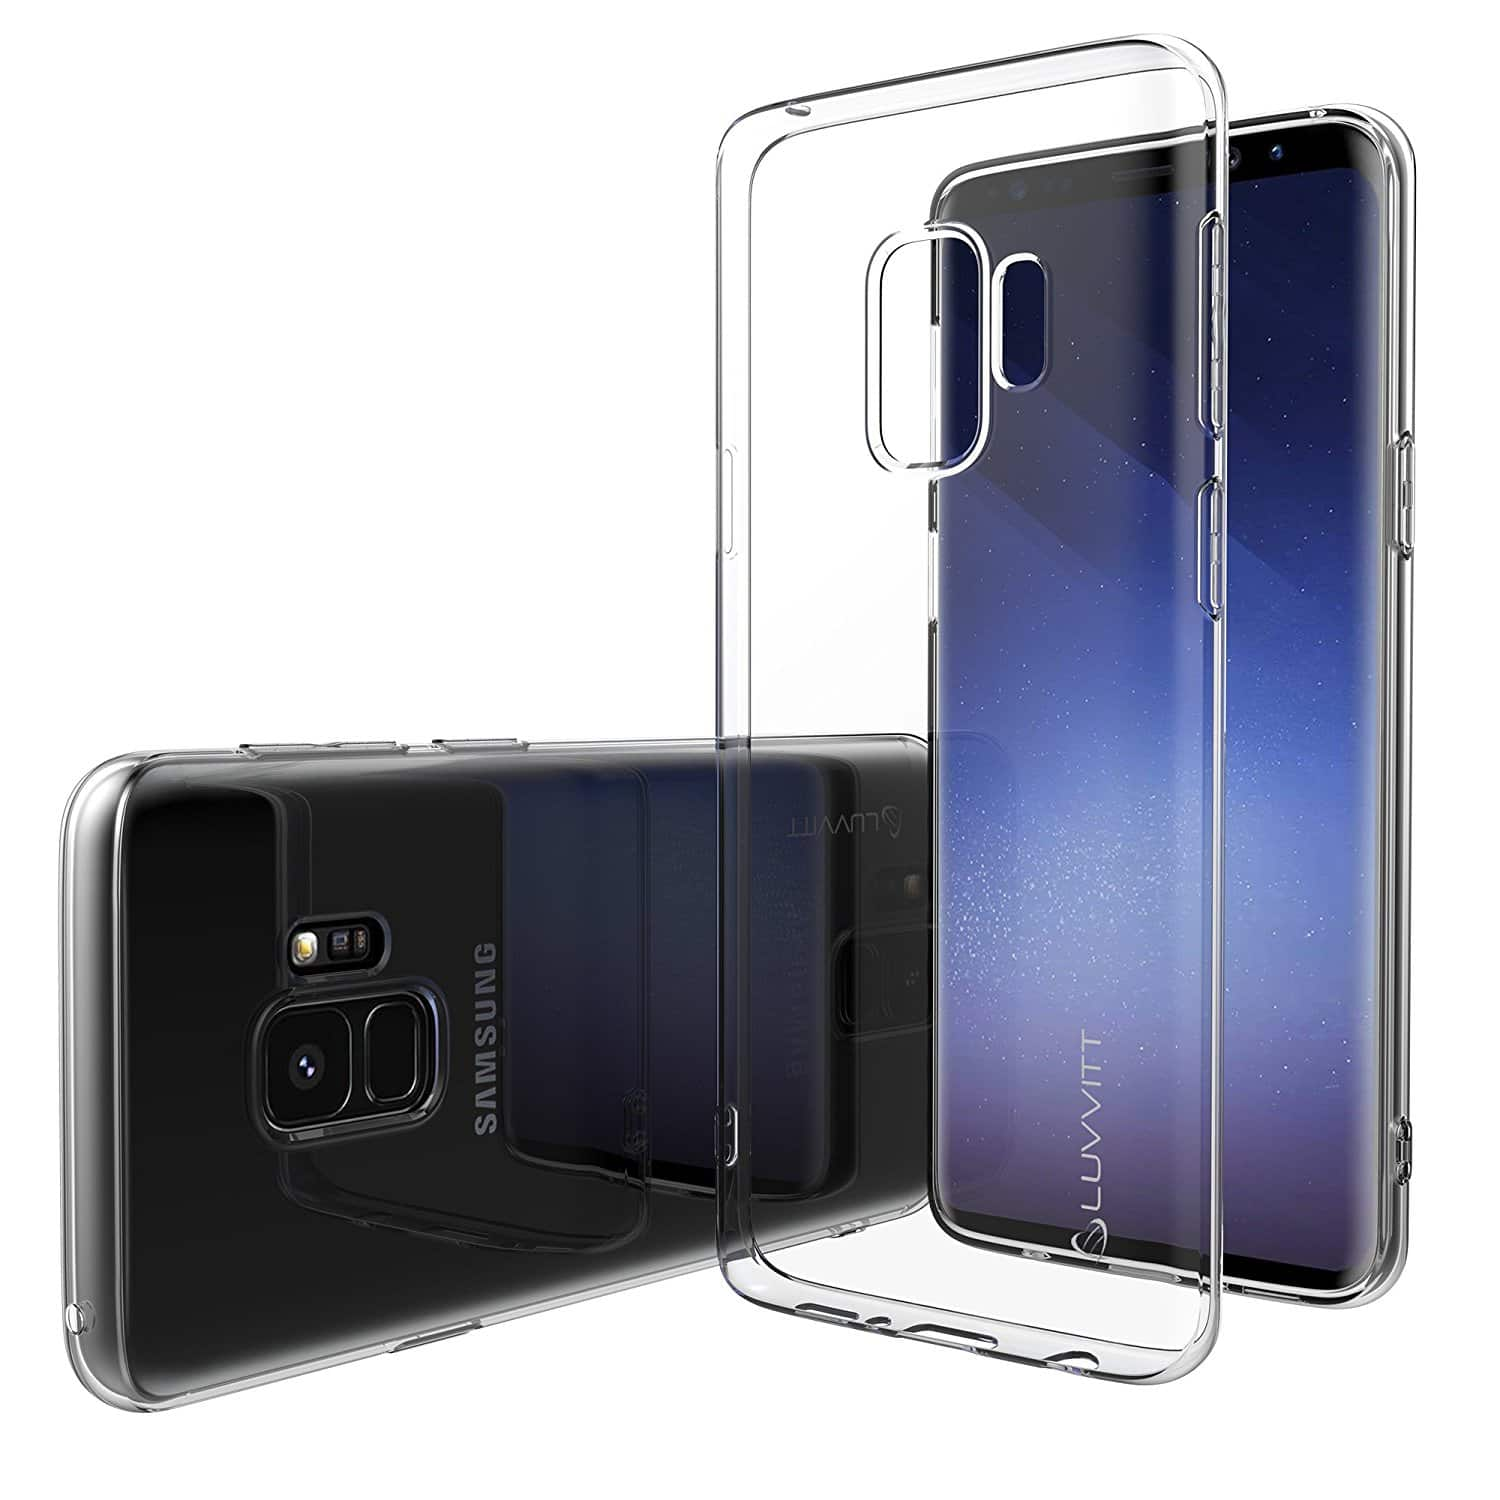 Luvvitt Cases for Samsung Galaxy S9/S9 Plus $4.42 & More + Free Shipping with Amazon Prime